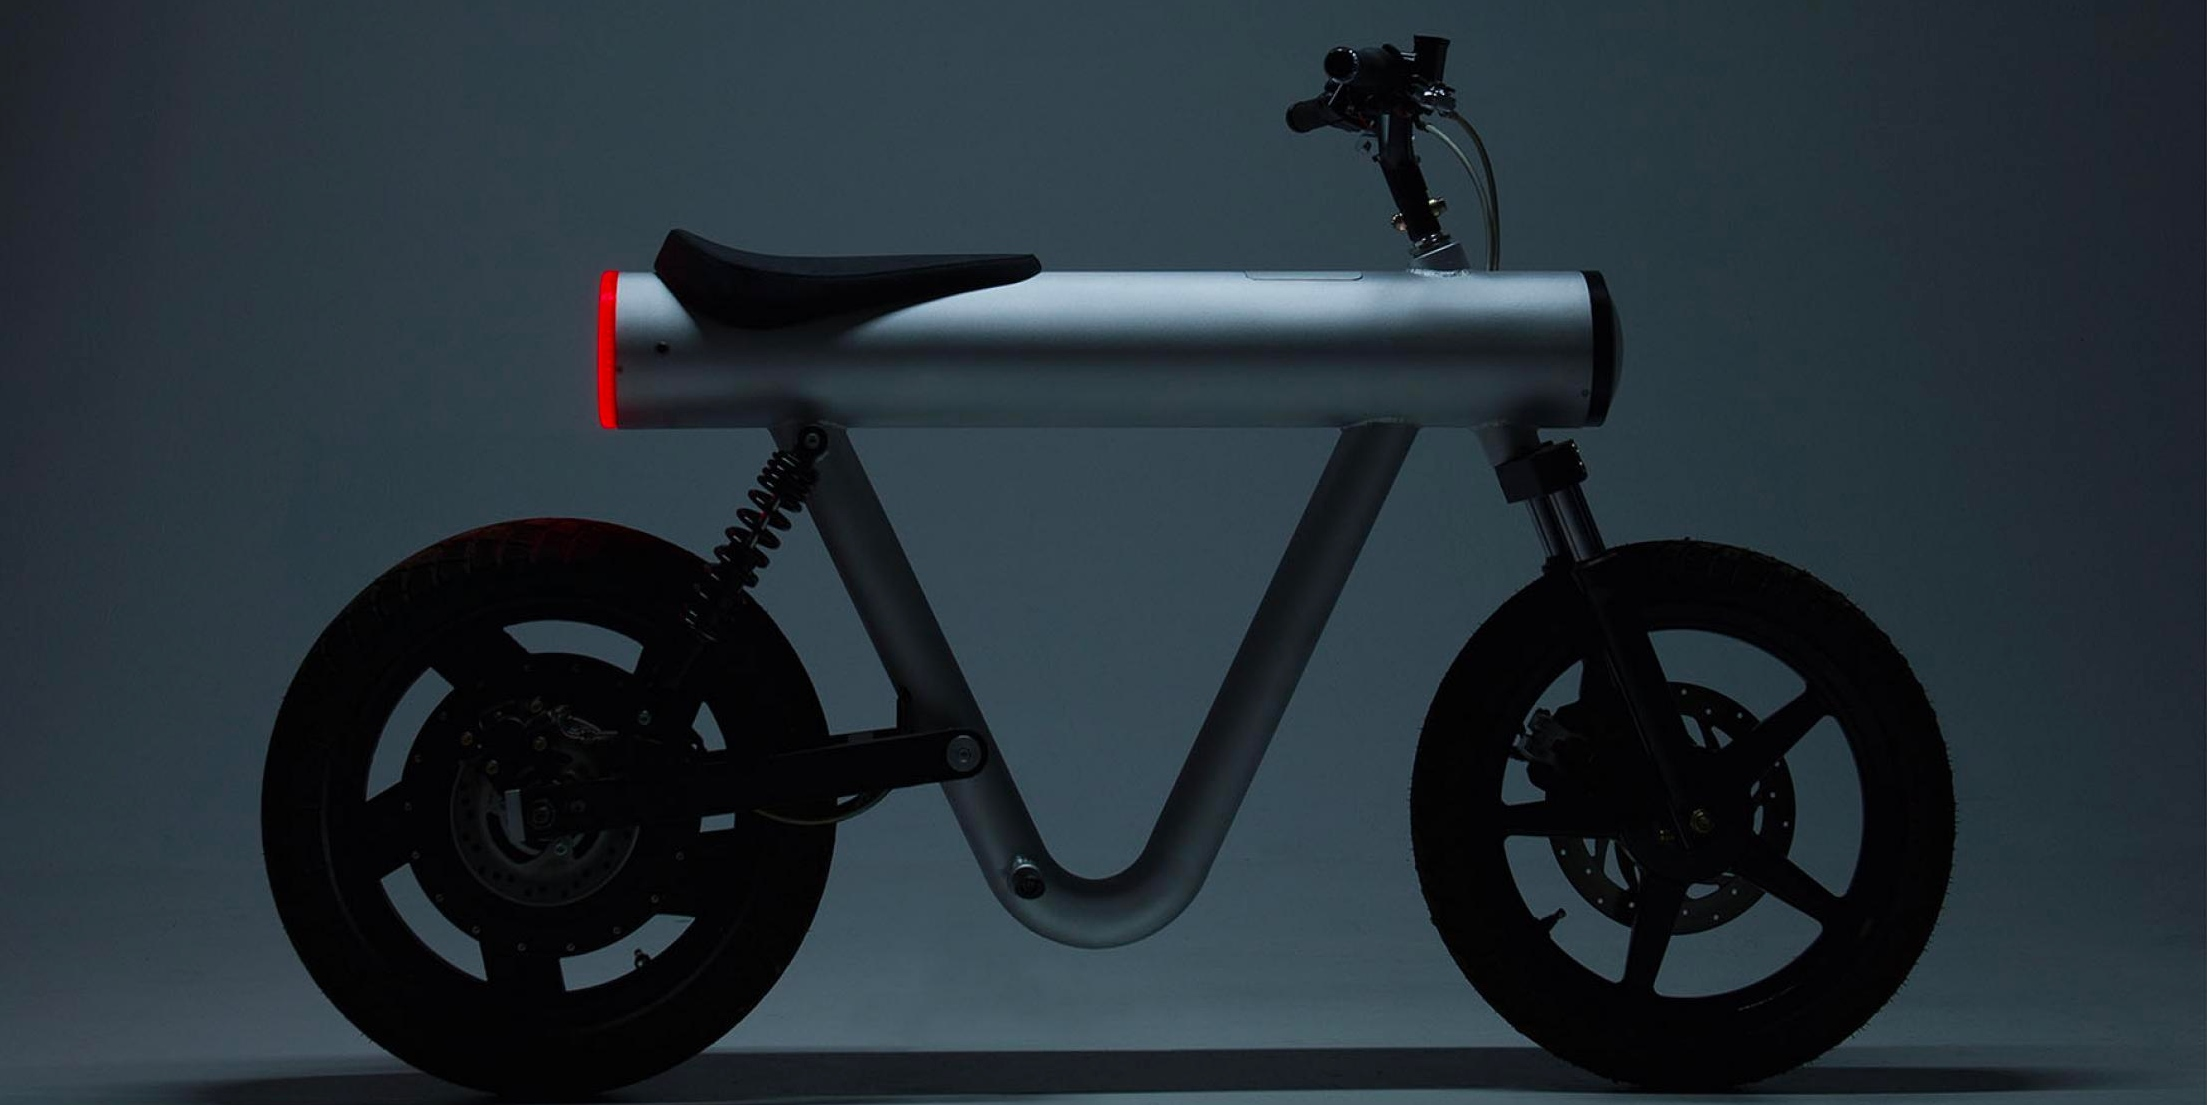 Sol Motors prepares to launch its 50 mph Pocket Rocket electric motorcycle